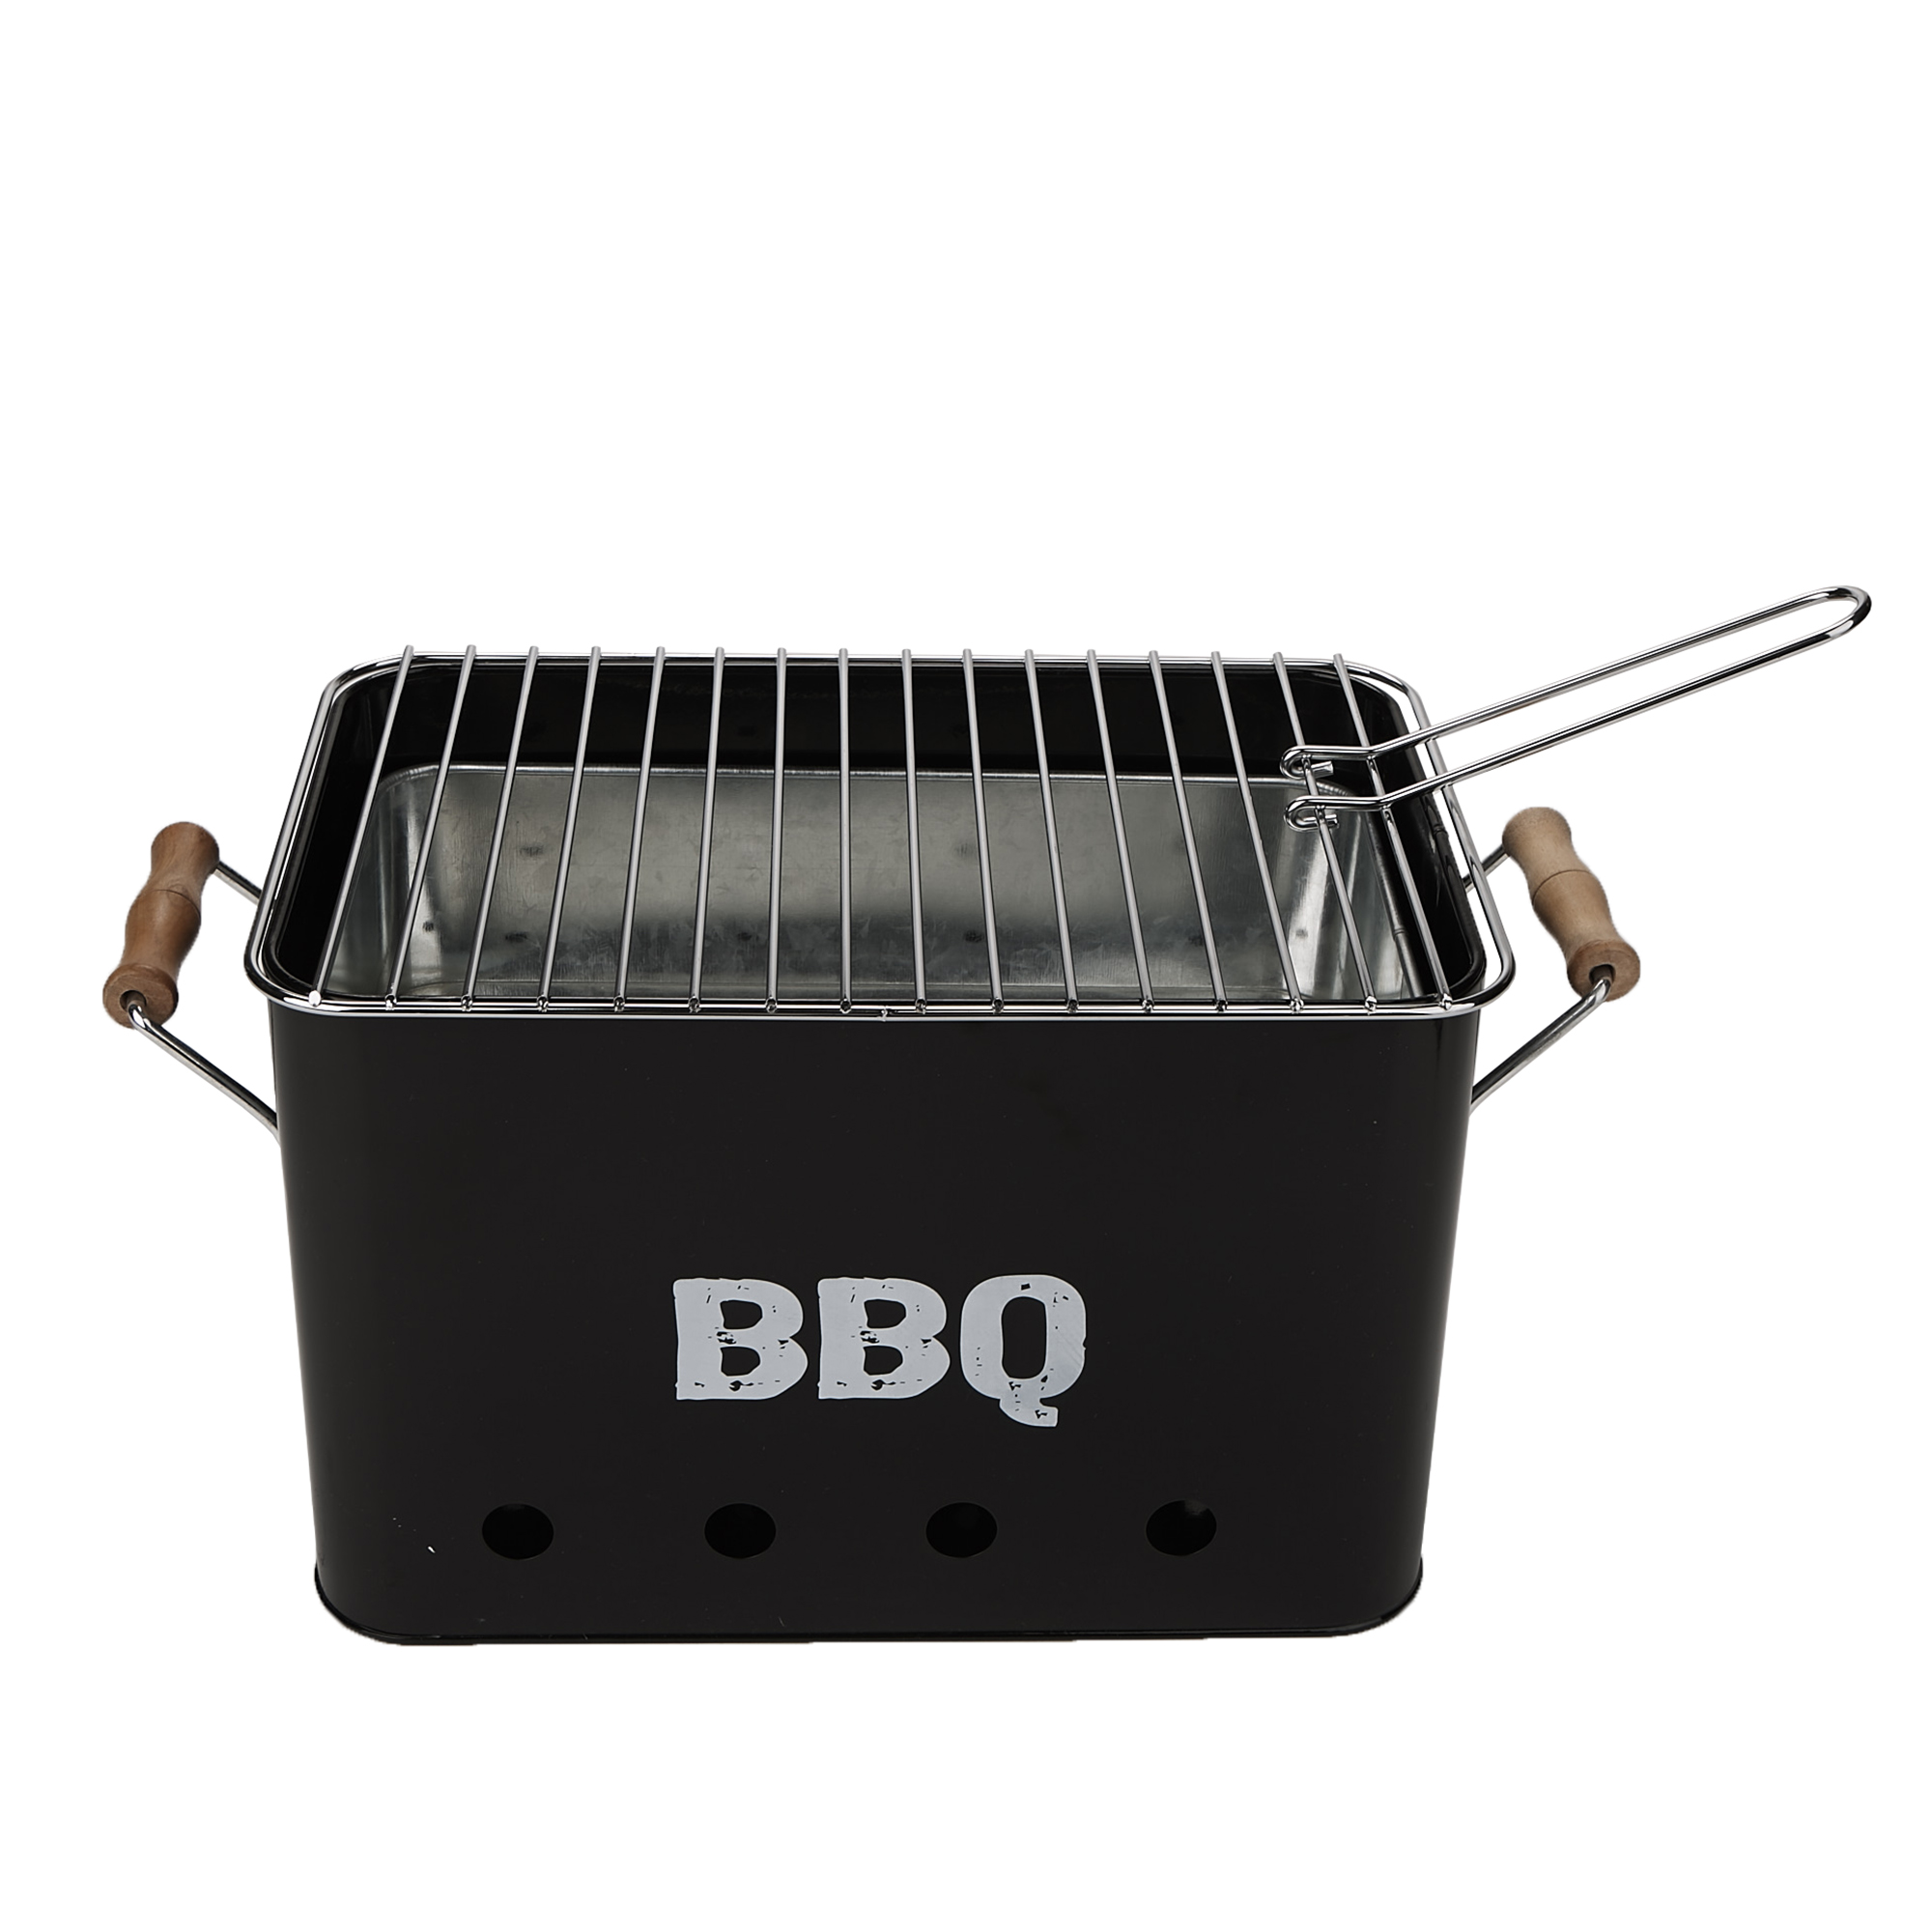 Small Barbecue Grill Mind Reader Small Metal Portable Bbq Grill Charcoal Lightweight Portable Grill Outdoor Grilling Picnics Beachs Camping Black